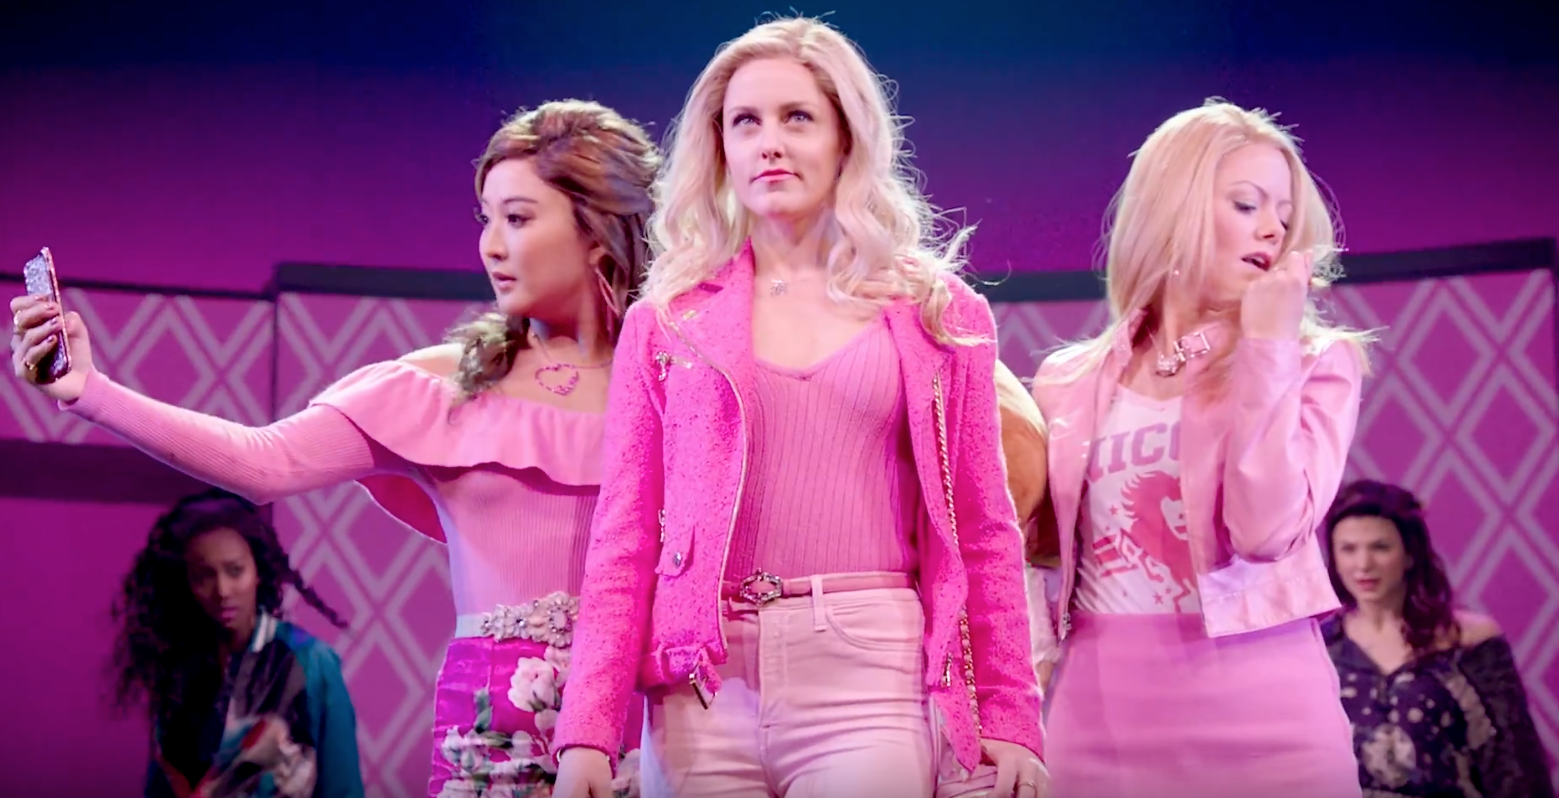 Watch Cady, the Plastics, and More in Action in Mean Girls